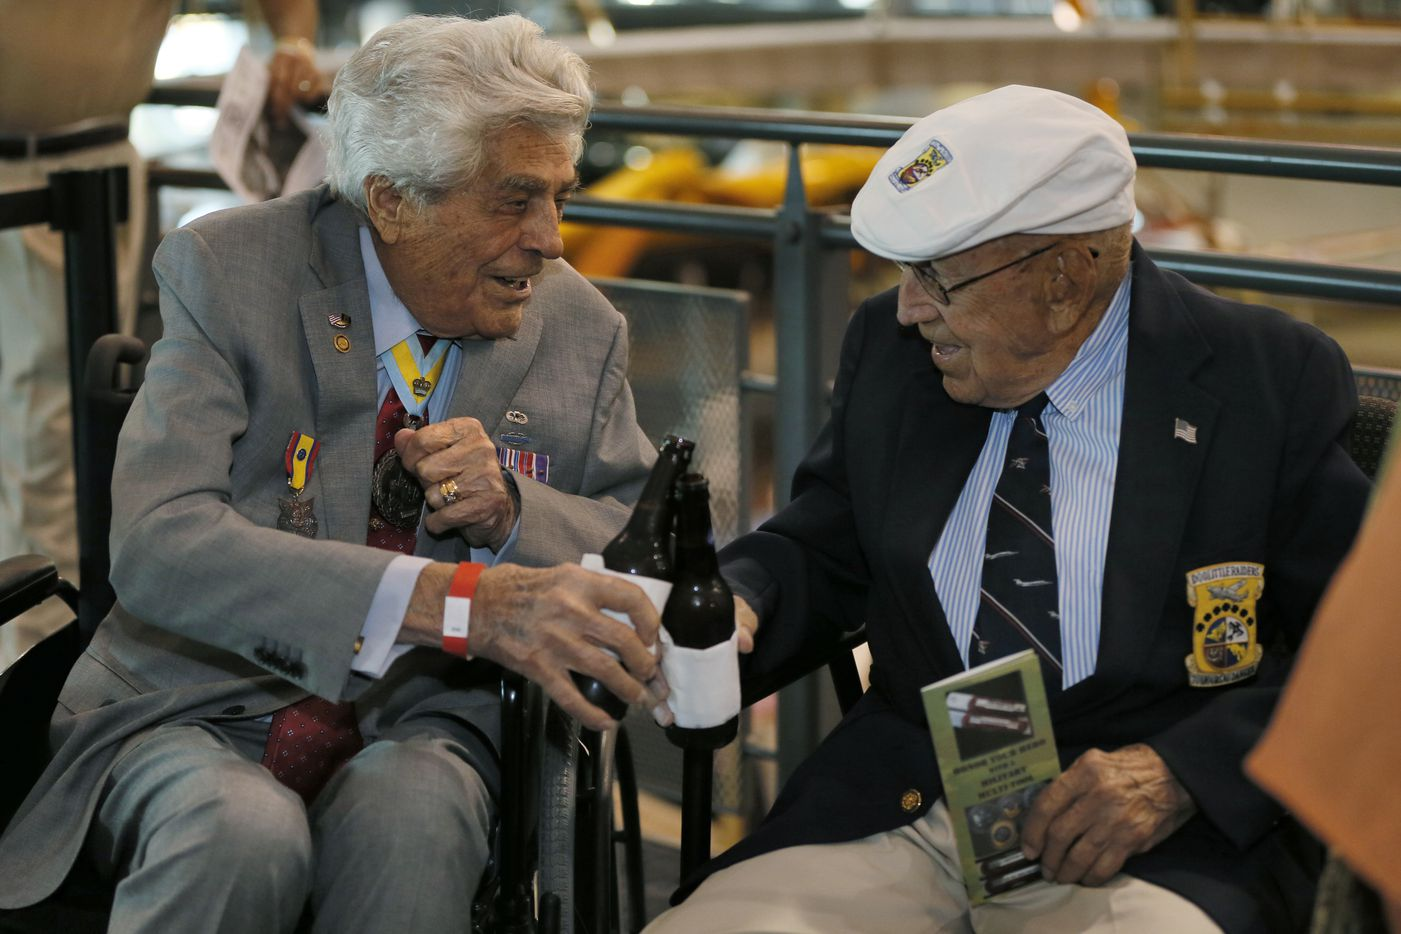 James Megellas, the most decorated officer in the 82nd Airborne, (left) and Richard Cole, co-pilot for Jimmy Doolittle on his famous 1942 Tokyo raid celebrates his 100th birthday, by toasting a beer during a reception for the survivors of the Doolittle raid at Frontiers of Flight Museum in Dallas in Dallas,  September 7, 2015. The two were on hand to see the premiere of 'Doolittle's Raiders: A Final Toast.'  (Nathan Hunsinger/The Dallas Morning News) ORG XMIT: moonday_0719met